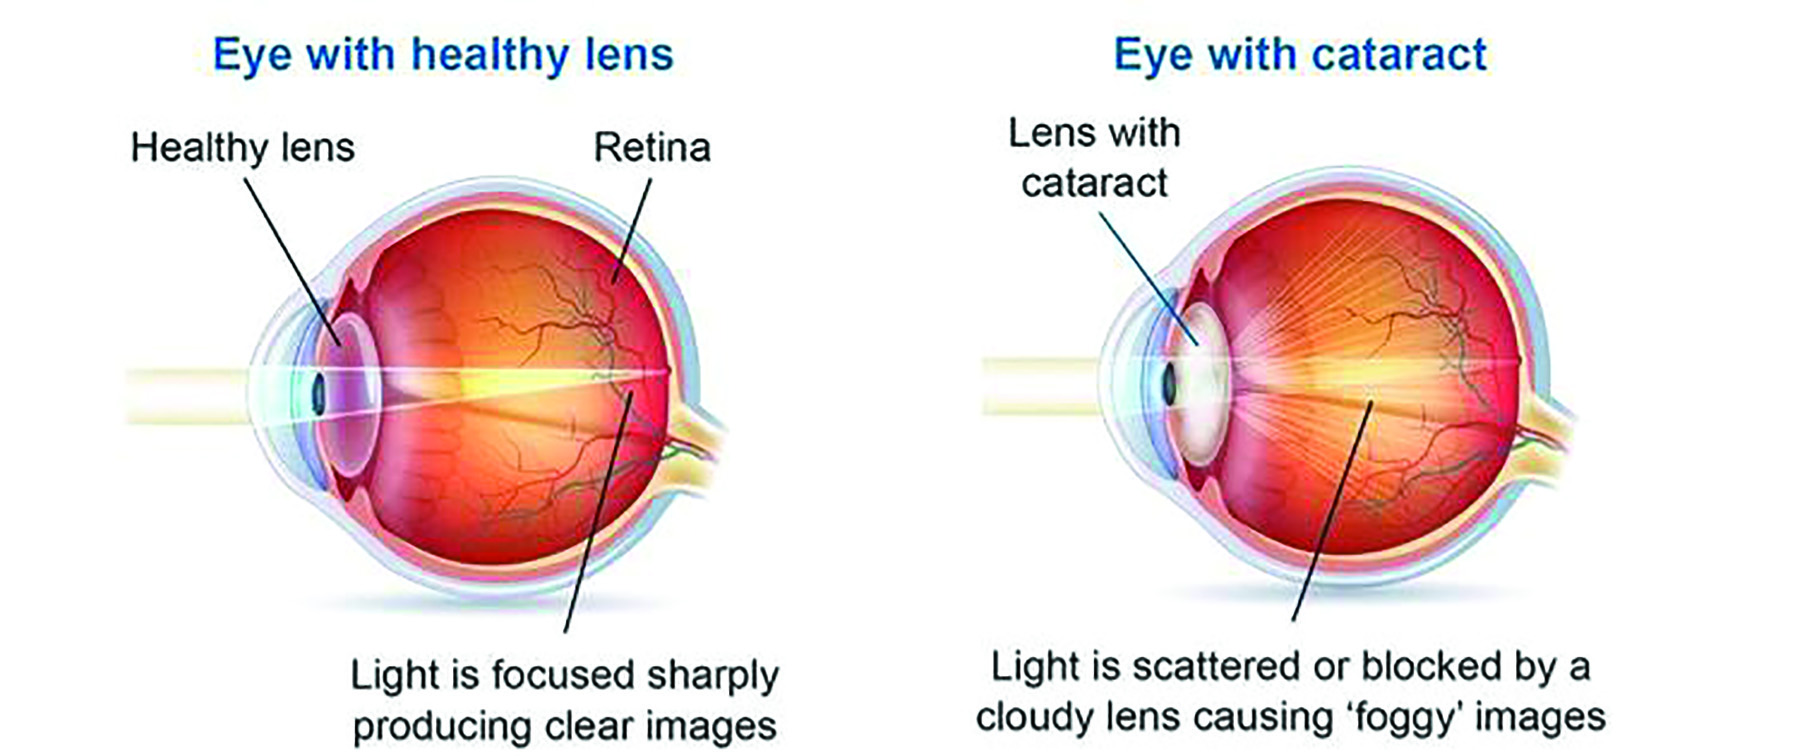 Cataracts typically develop as the human eye ages.